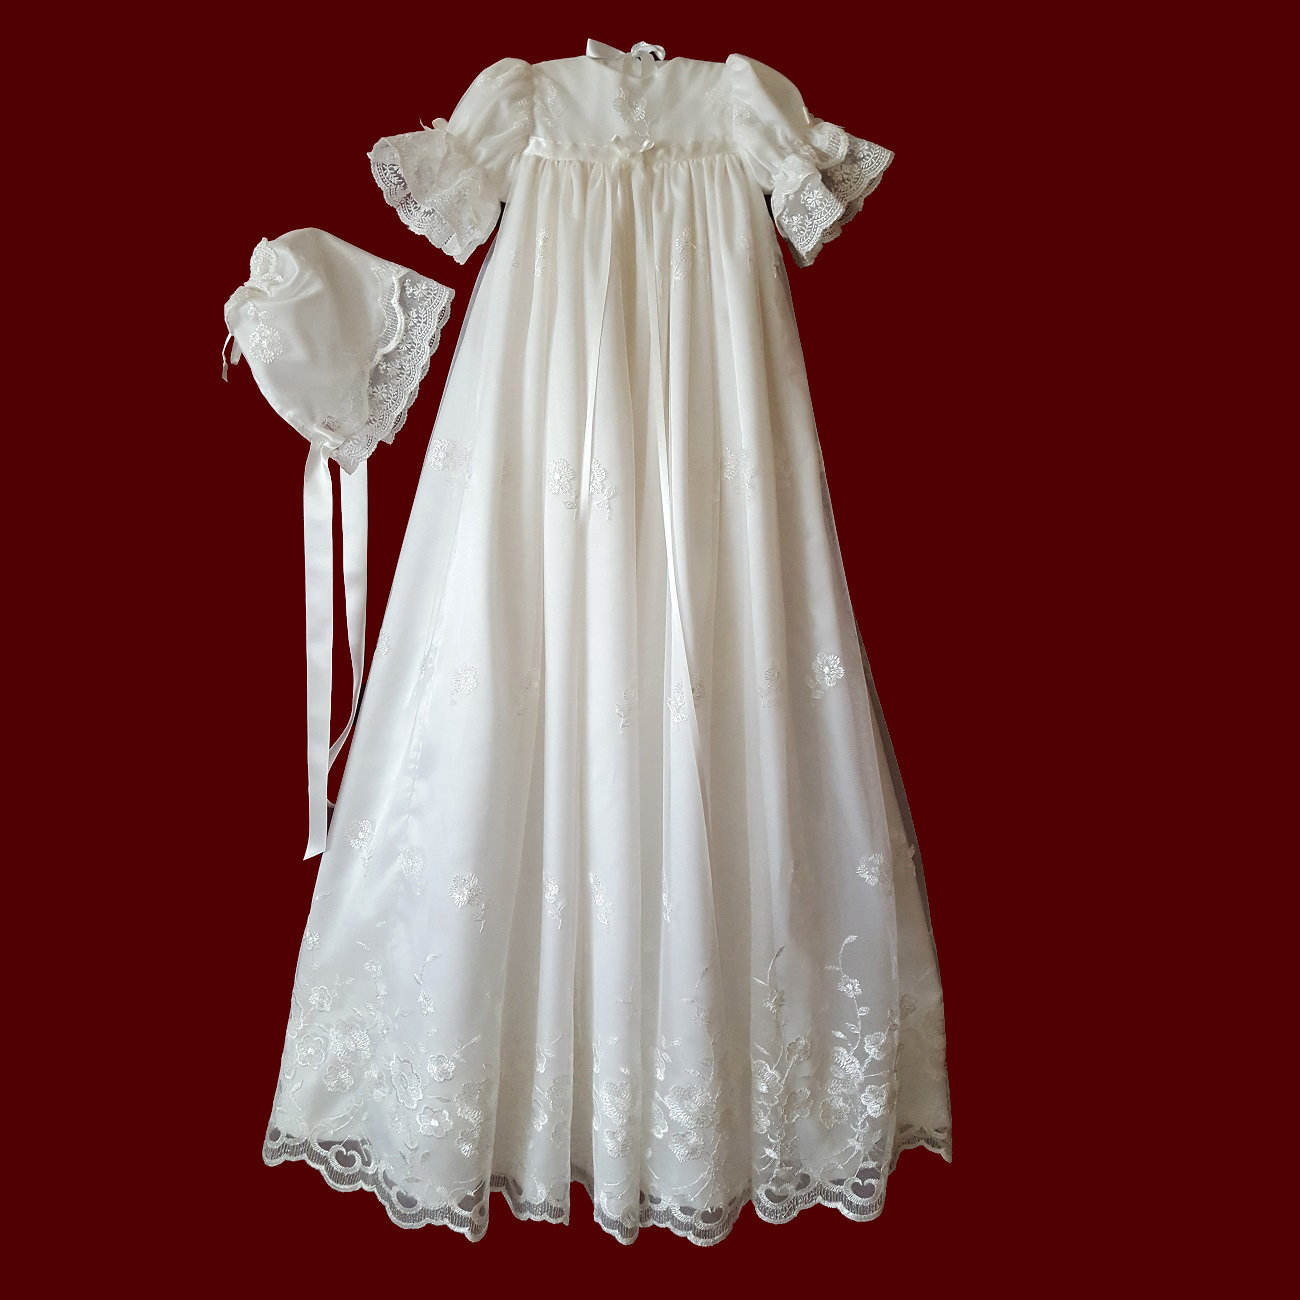 Iridescent Sparkle Embroidered Netting Christening Gown & Bonnet